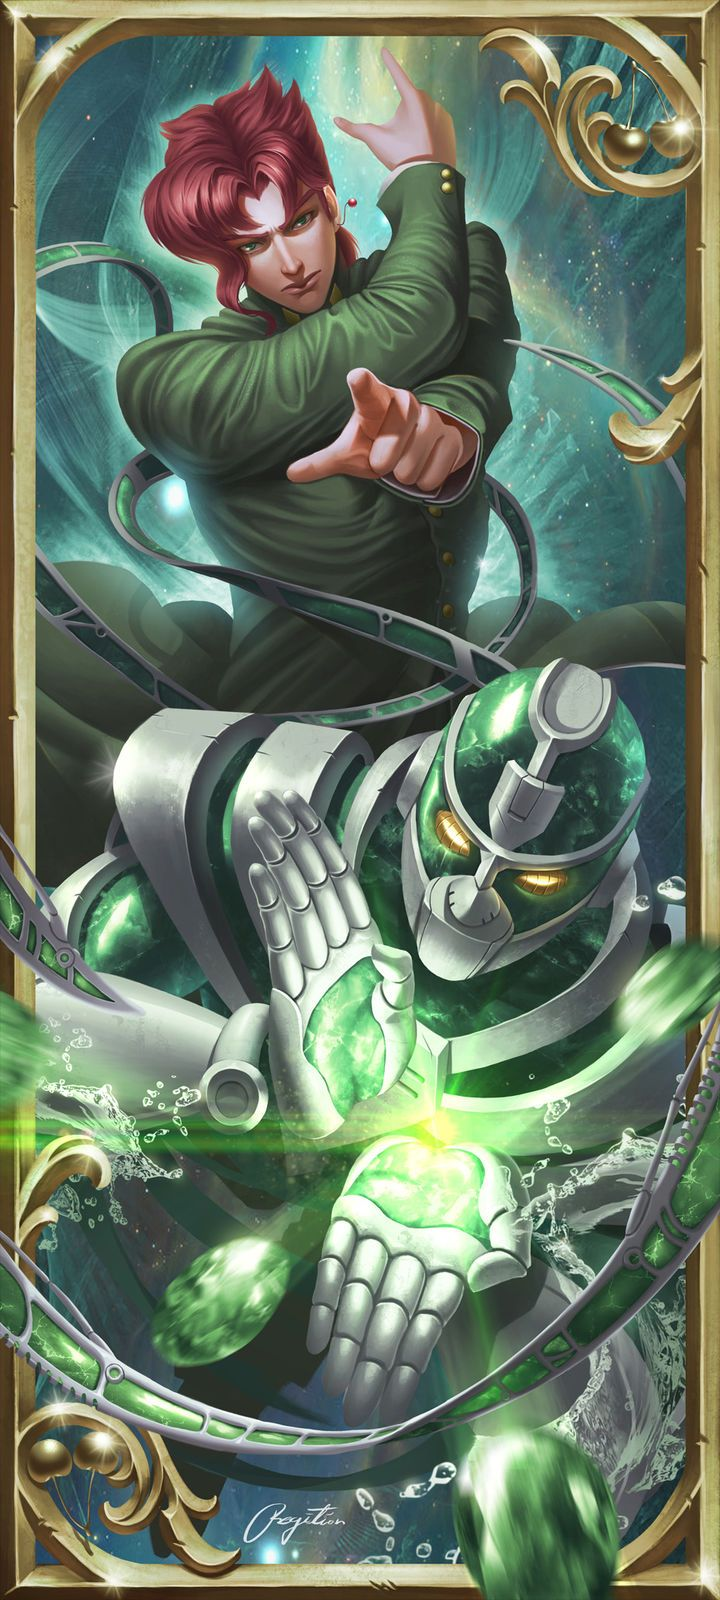 Hello. My name is Noriaki Kakyoin, but not that it matters all that much. Let's see...I'm 17 years old, I have a tendency to get injured a lot, I enjoy art, and my family travels often. My stand's name is Hierophant Green.